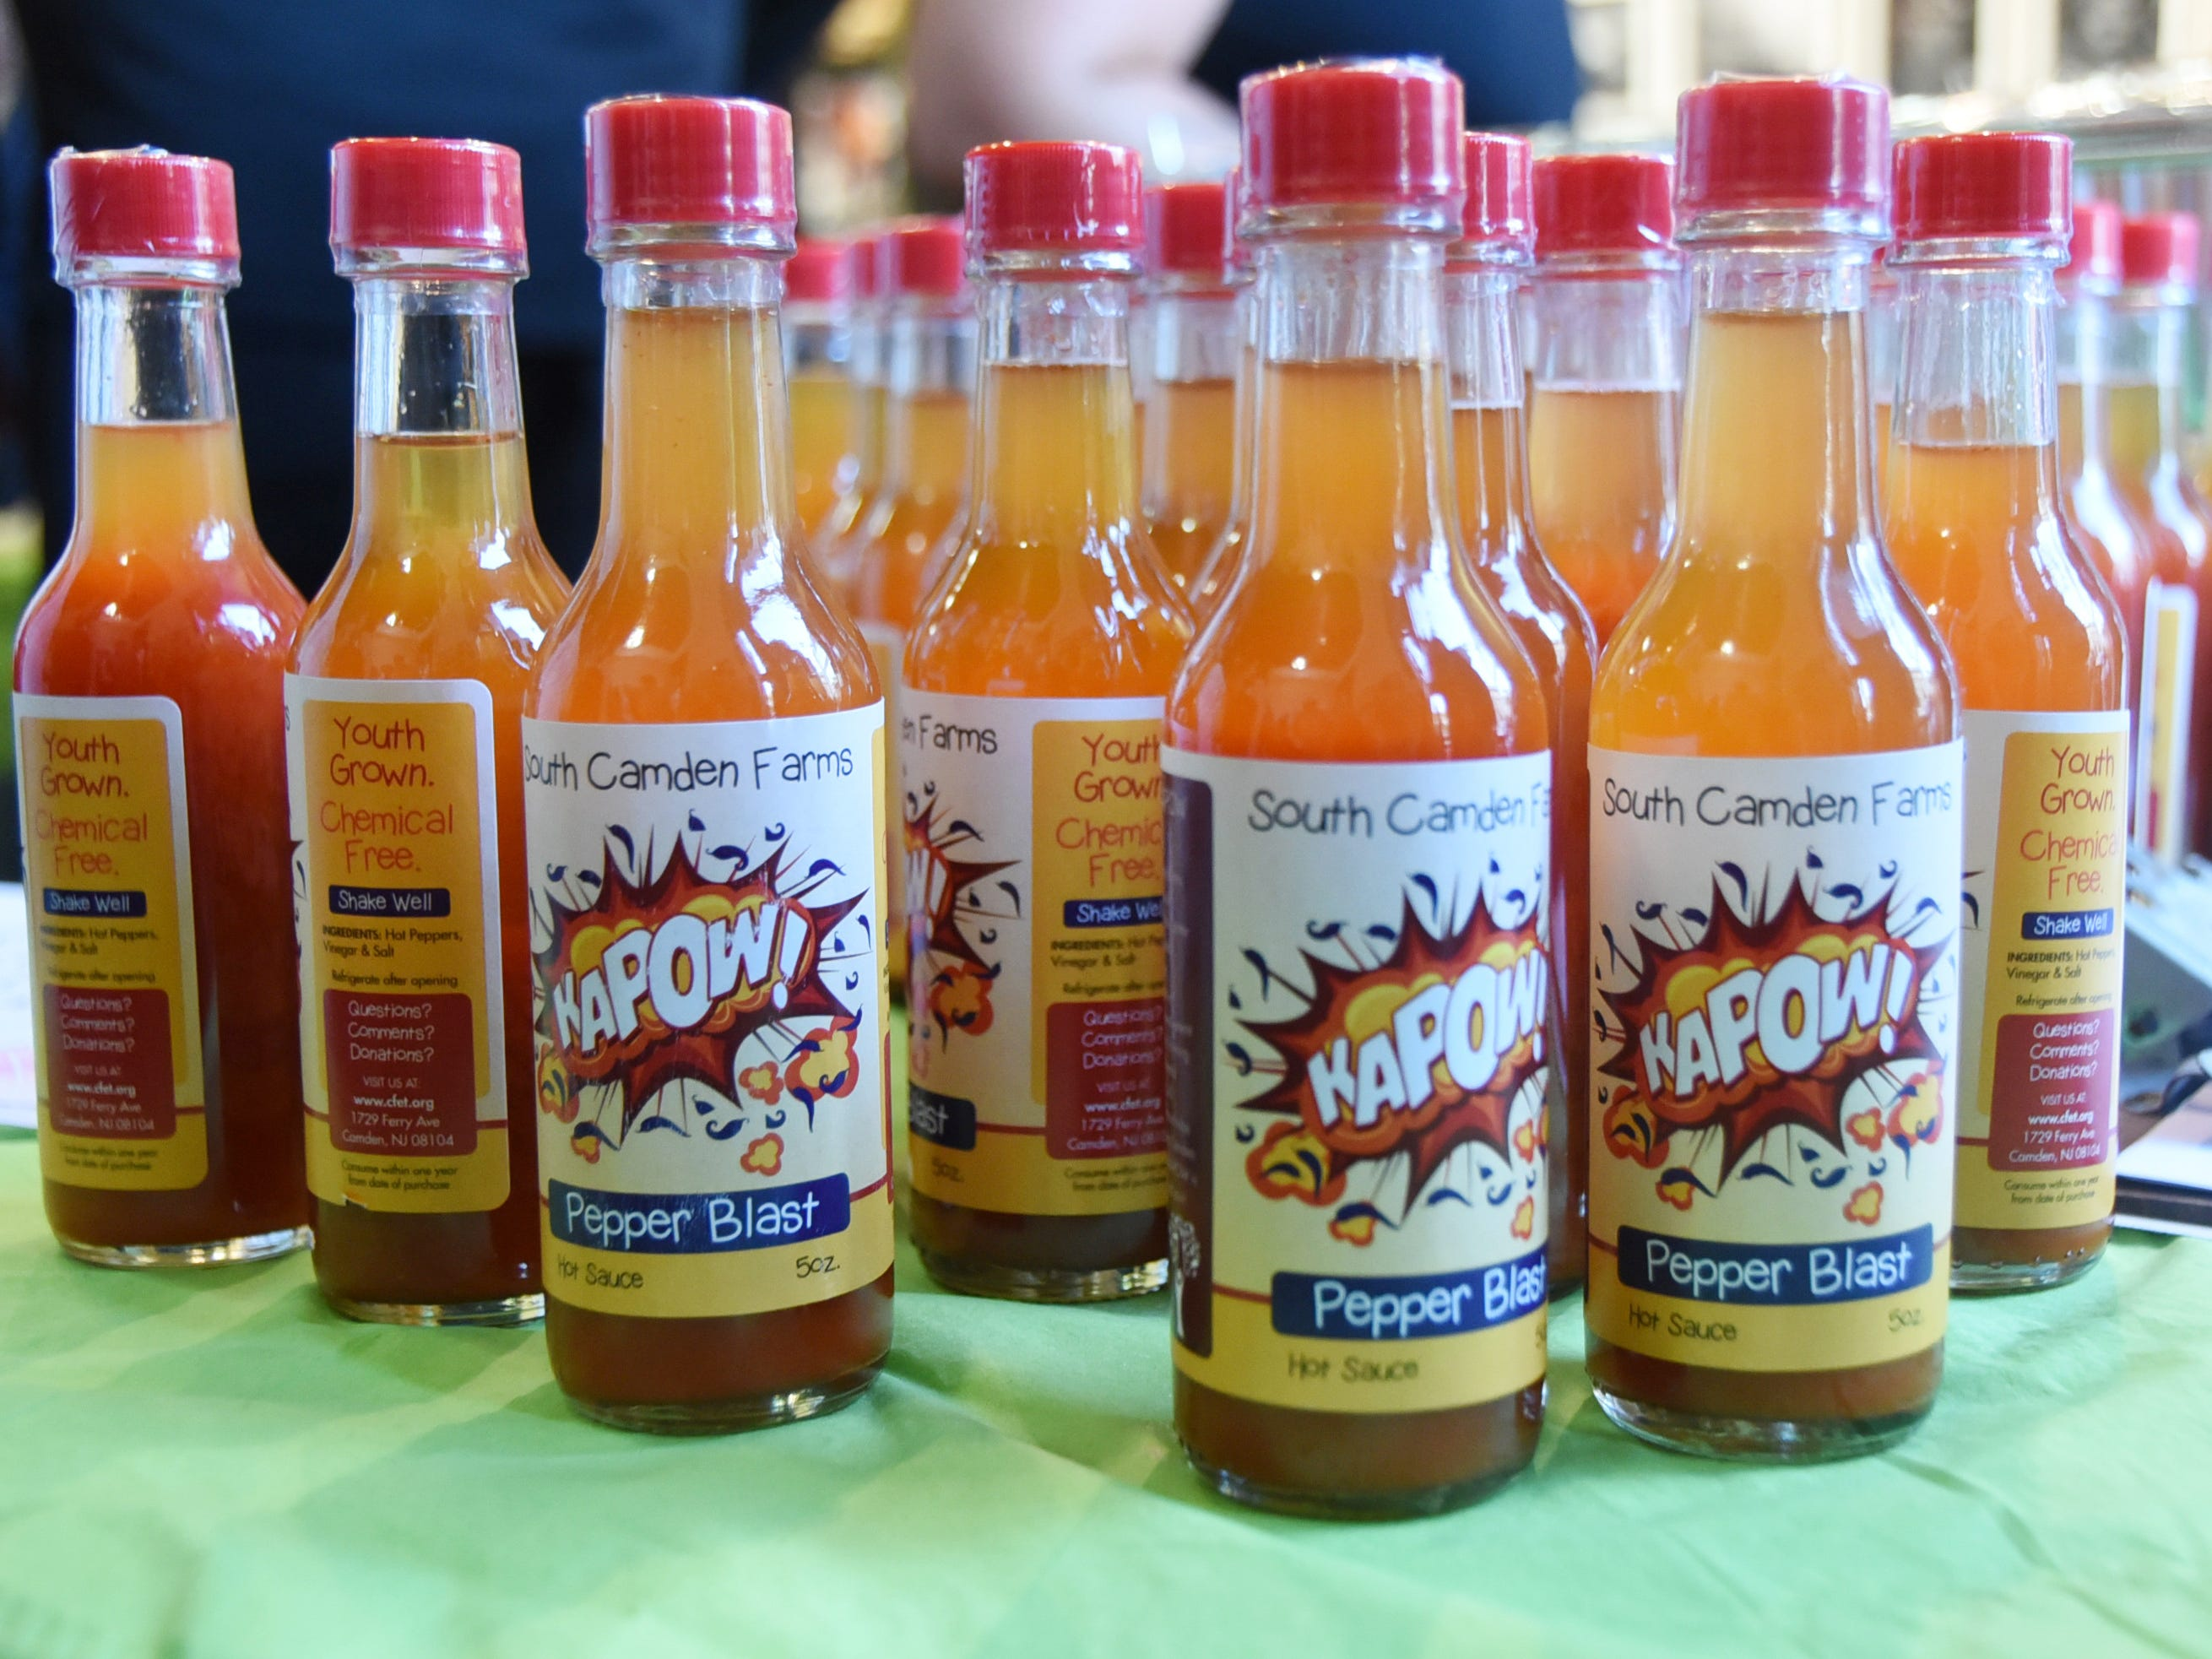 Bottles of hot sauce from South Camden Farms are displayed at the #WasteNot for CFET event at the FireWorks Gallery in South Camden on Saturday, September 29, 2018.  The Courier-Post partnered with the Farm & Fisherman Tavern in Cherry Hill and other community organizations to hold the event that offered a special tasting, farm tour and community conversation about reducing food waste.